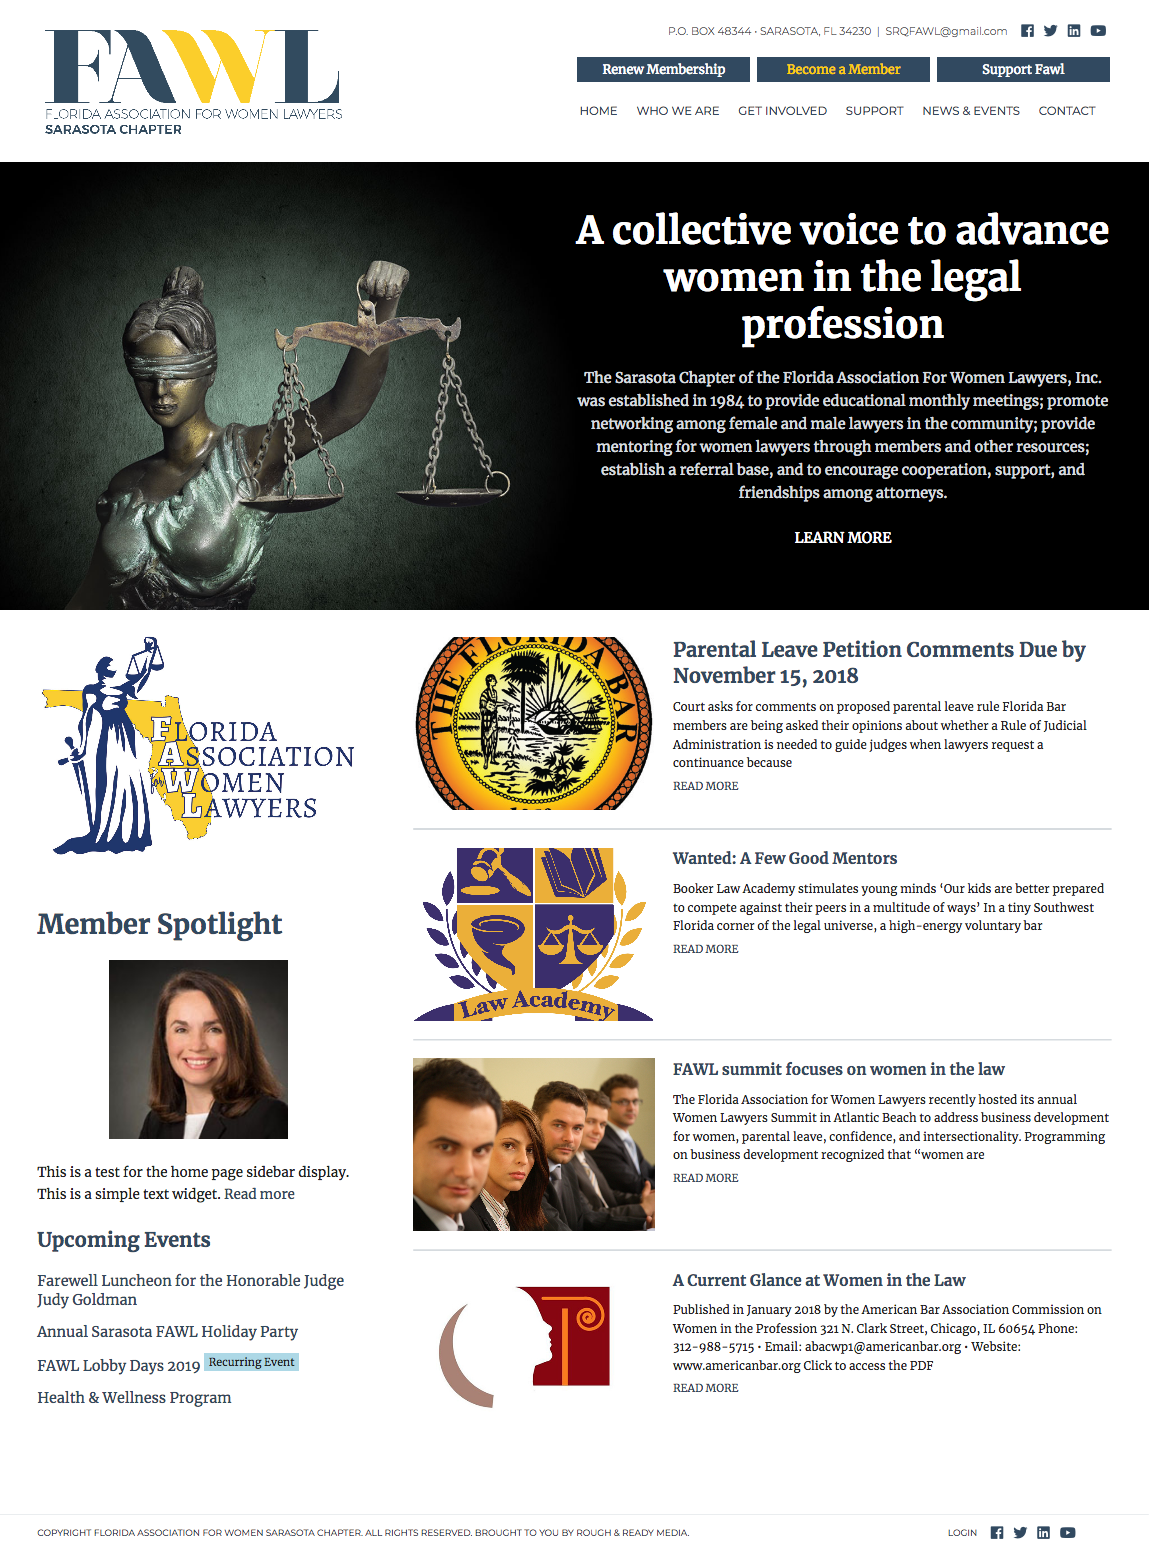 Florida Association for Women Lawyers Website Design by Rough & Ready Media